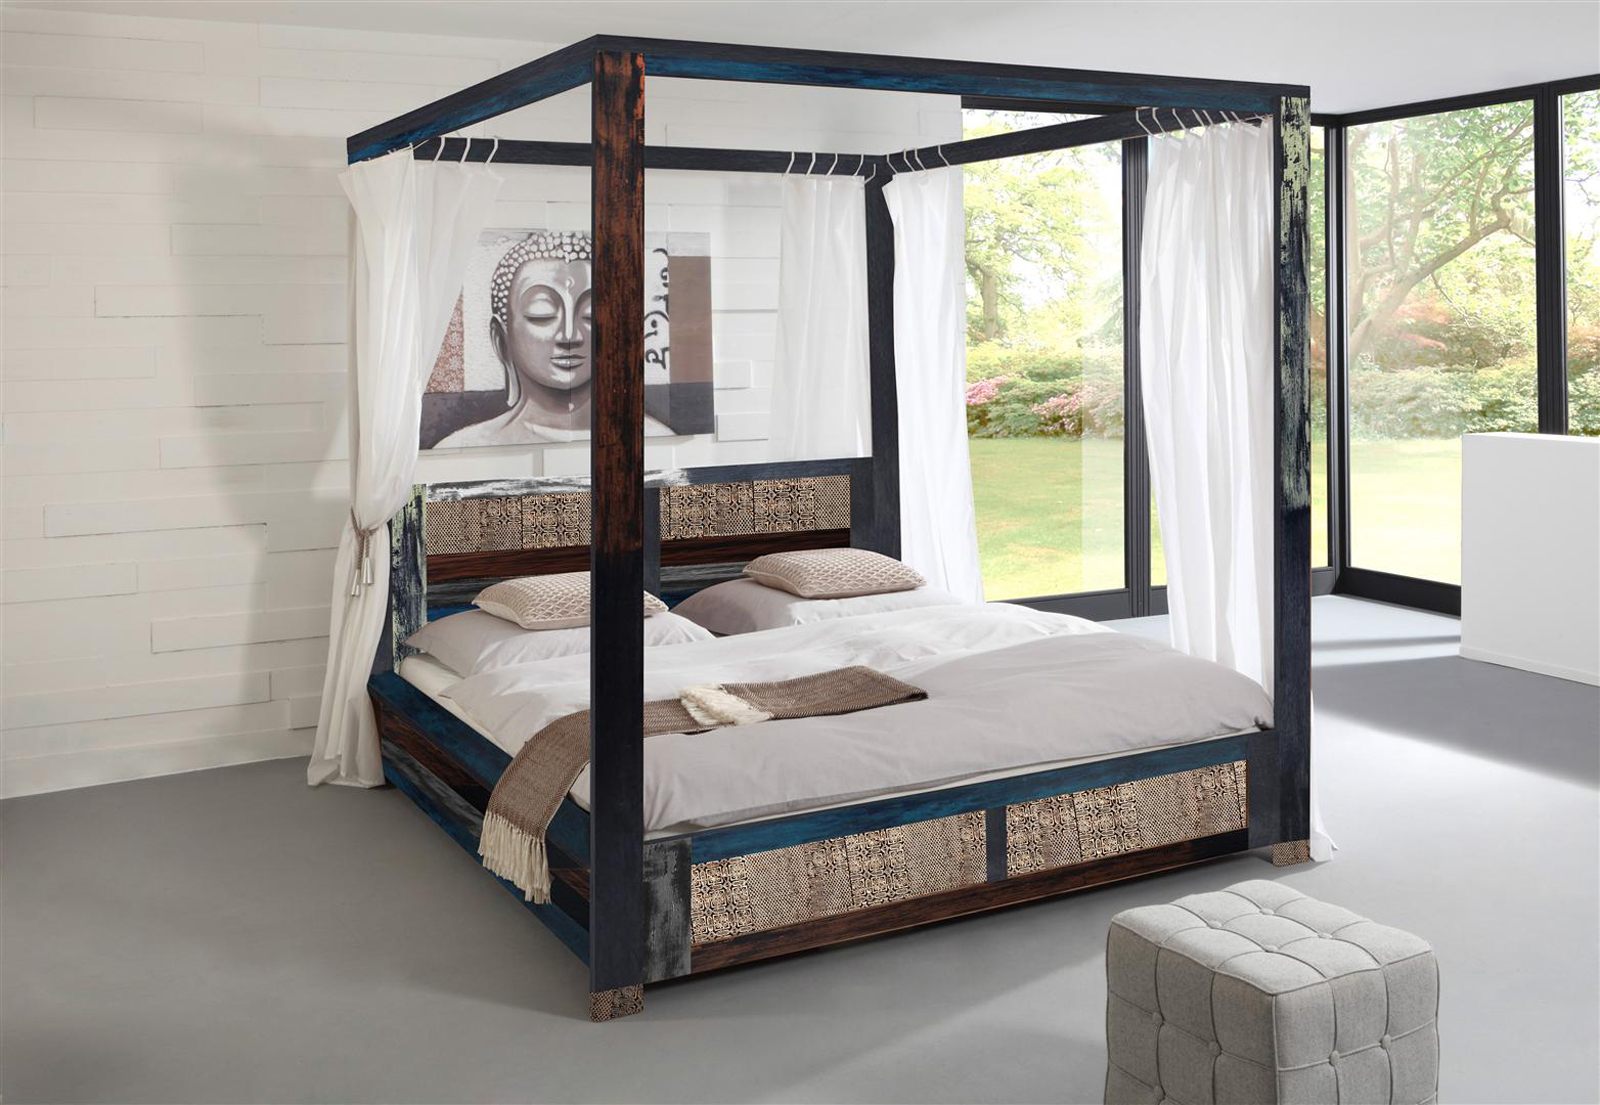 sam vintage himmelbett holzbett metall 140 x 200 cm bunt goa auf lager. Black Bedroom Furniture Sets. Home Design Ideas